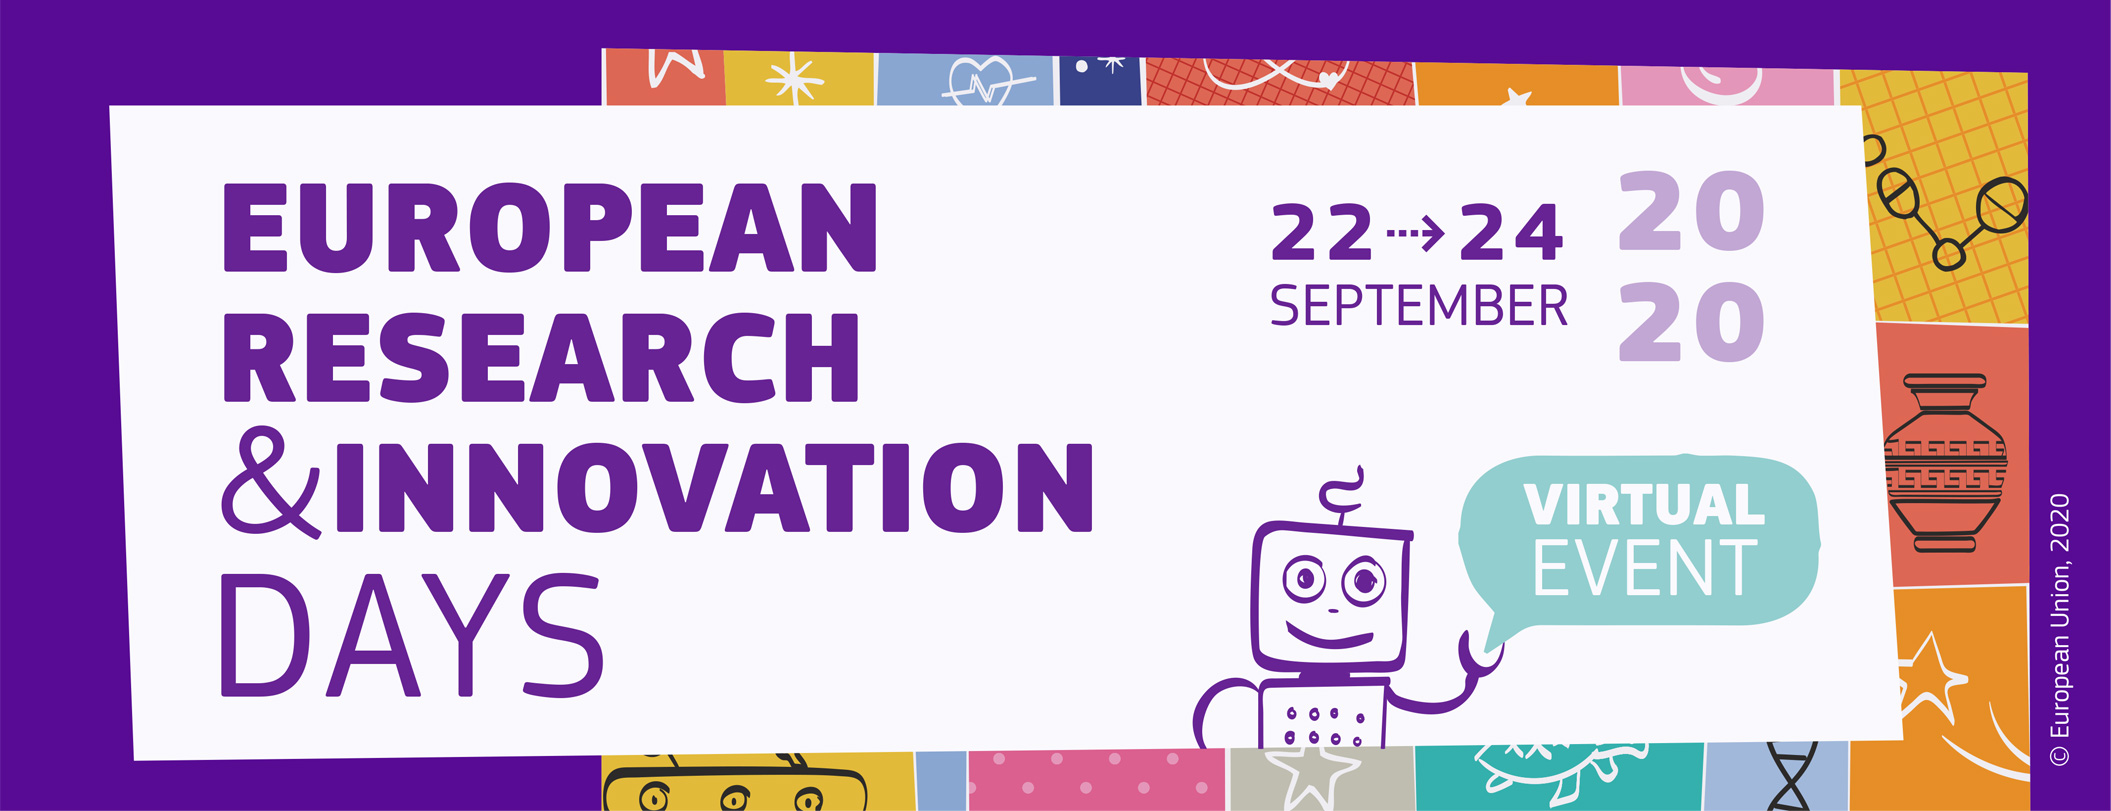 (Español) European Research and Innovation Days (22-24 septiembre 2020)